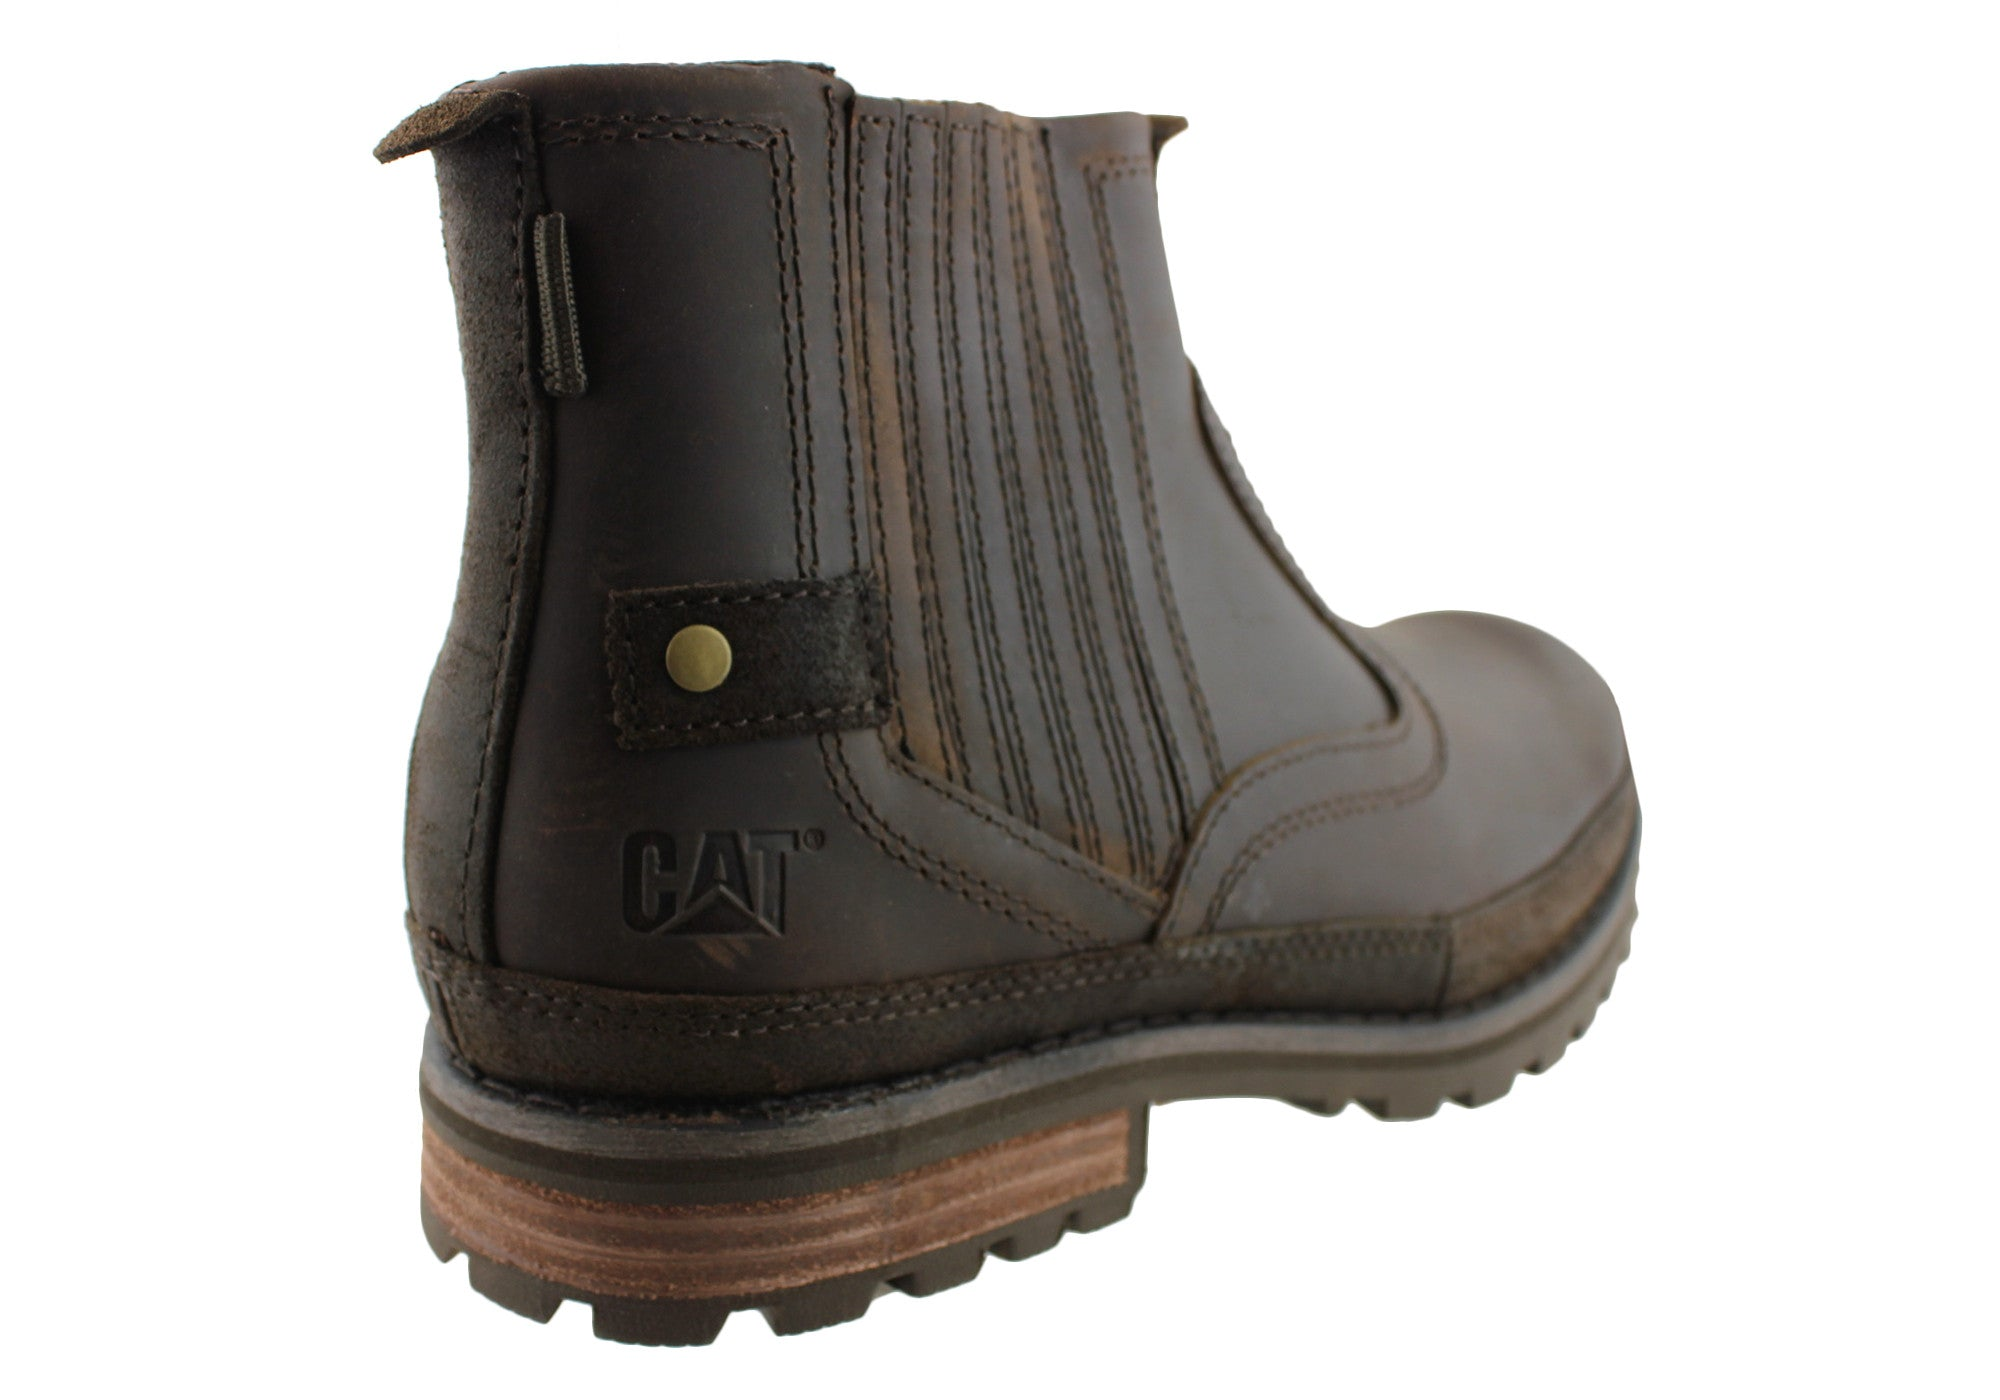 Caterpillar Rivingston Mens Outdoor Casual Boots (Wide Fit)